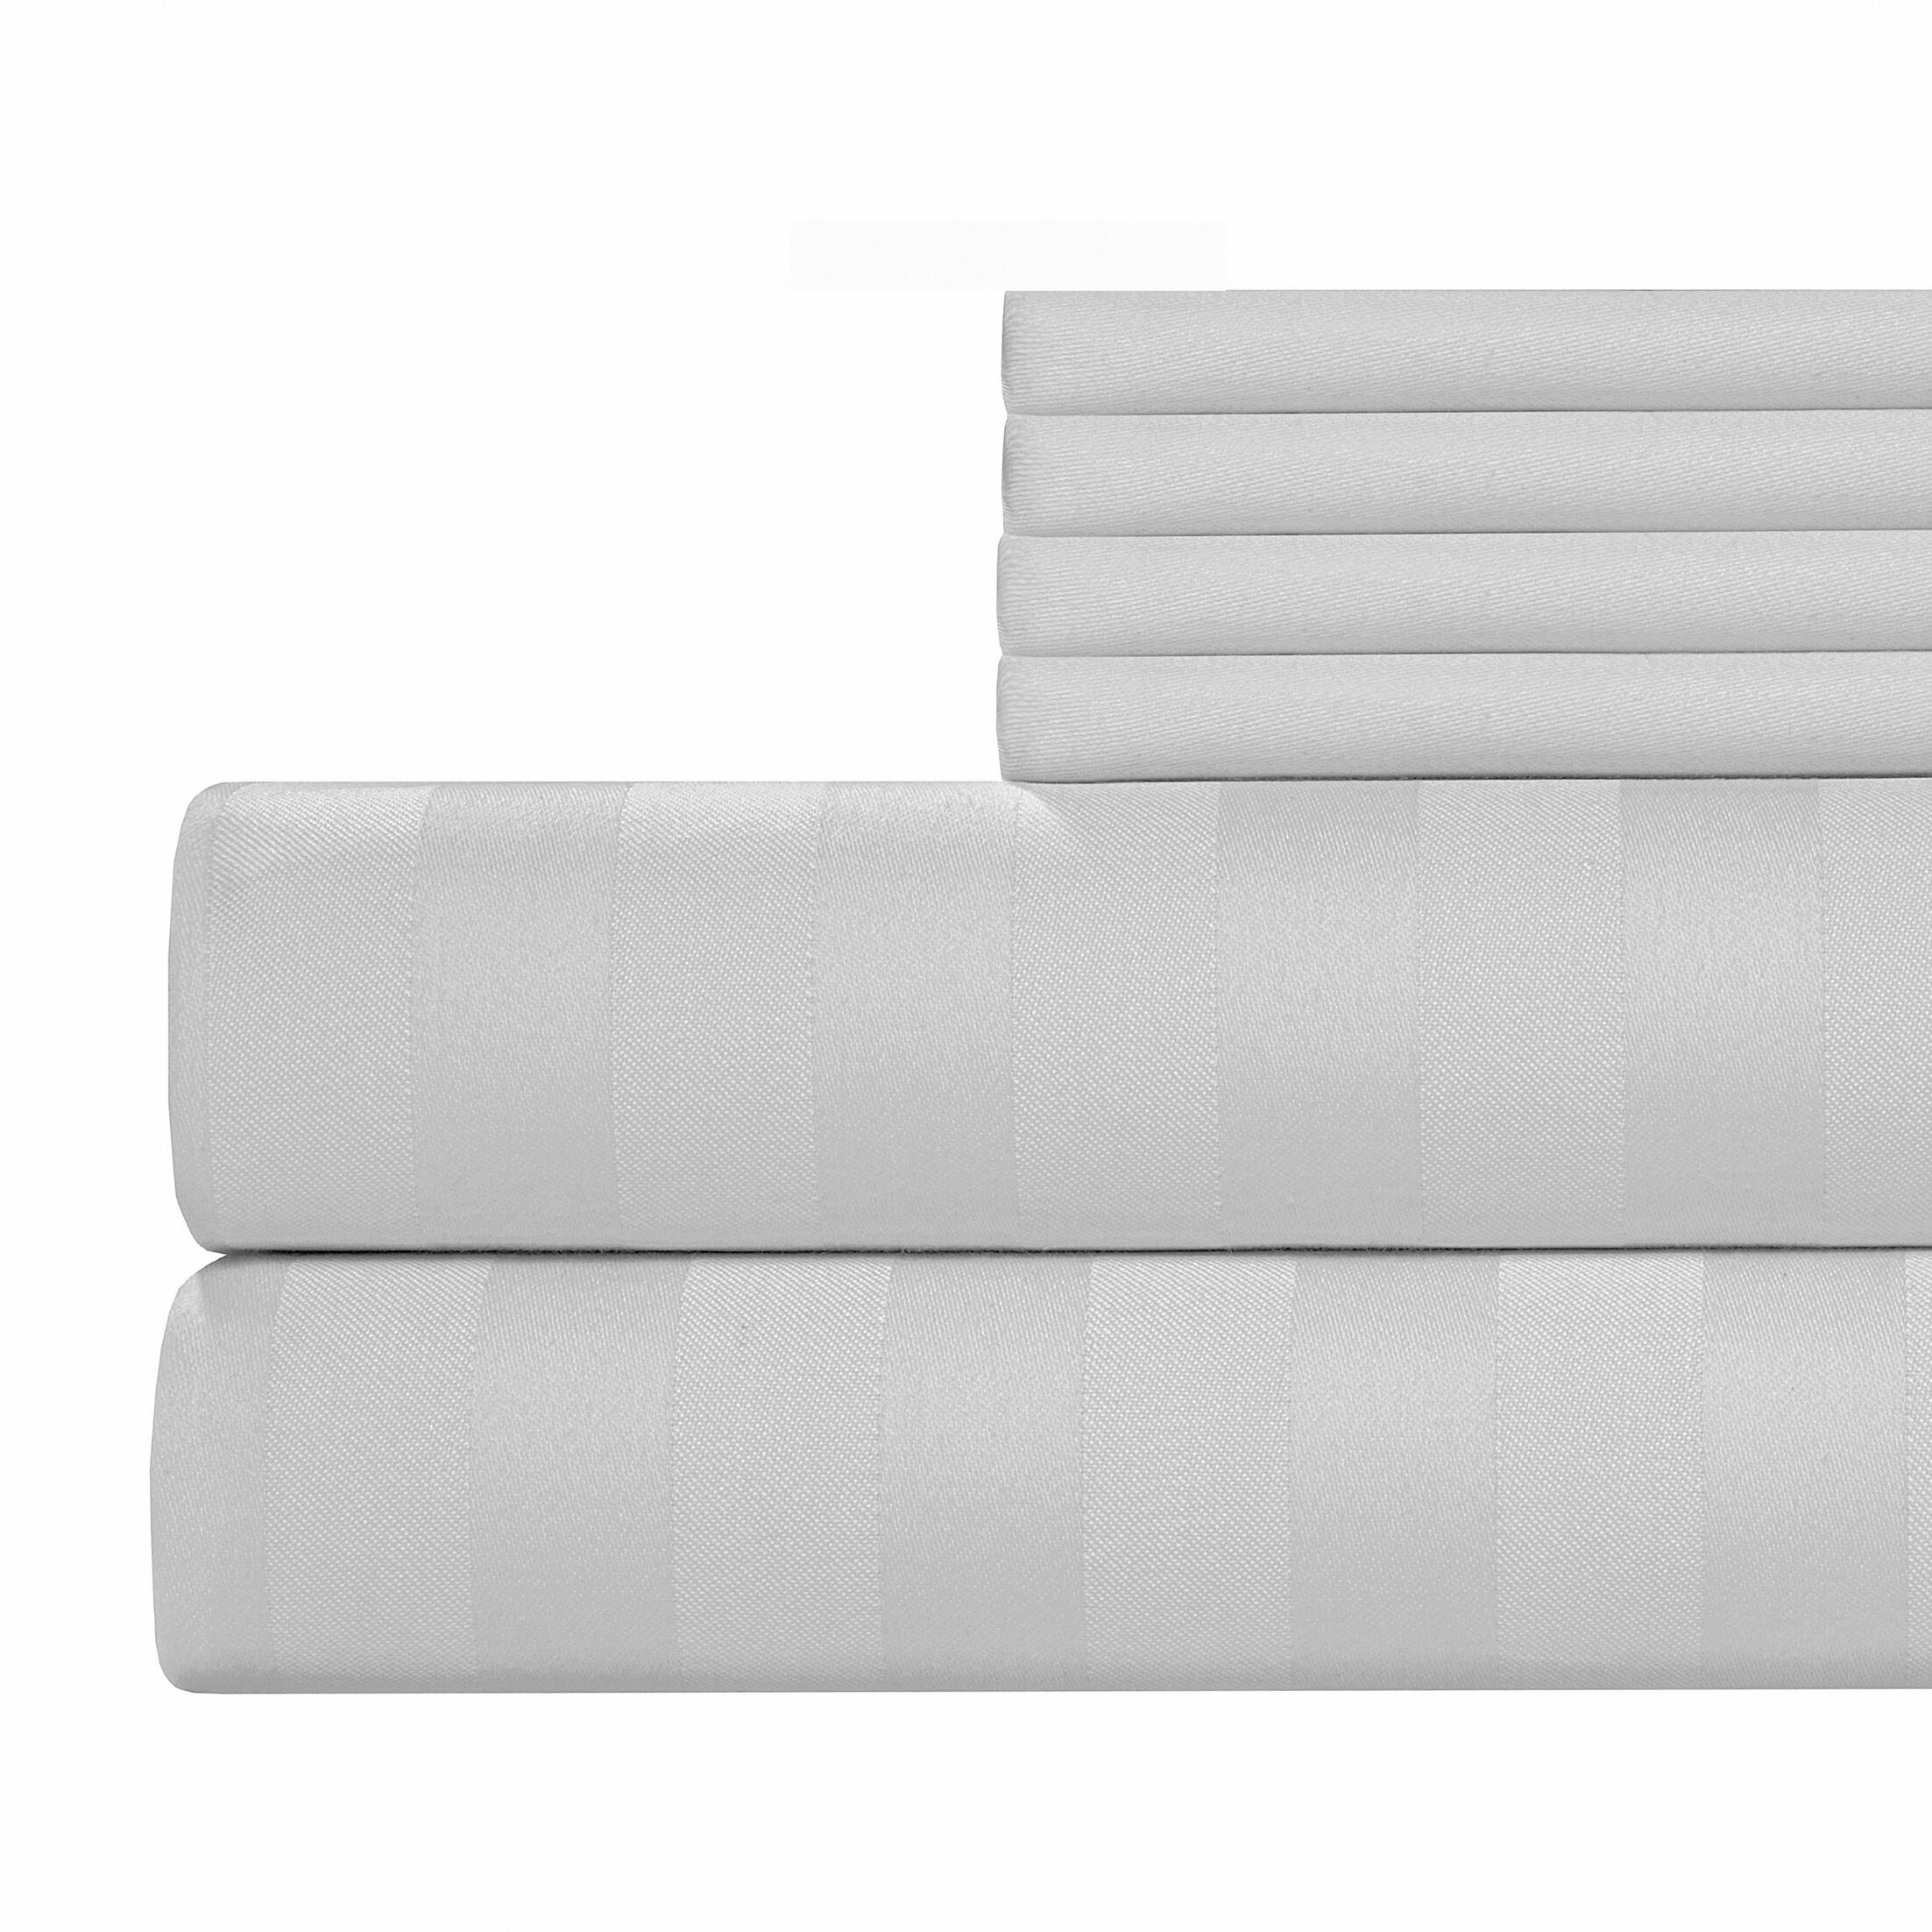 6 Piece 500 Thread Count Egyptian Quality Cotton Sheet Set Color: White, Size: Queen